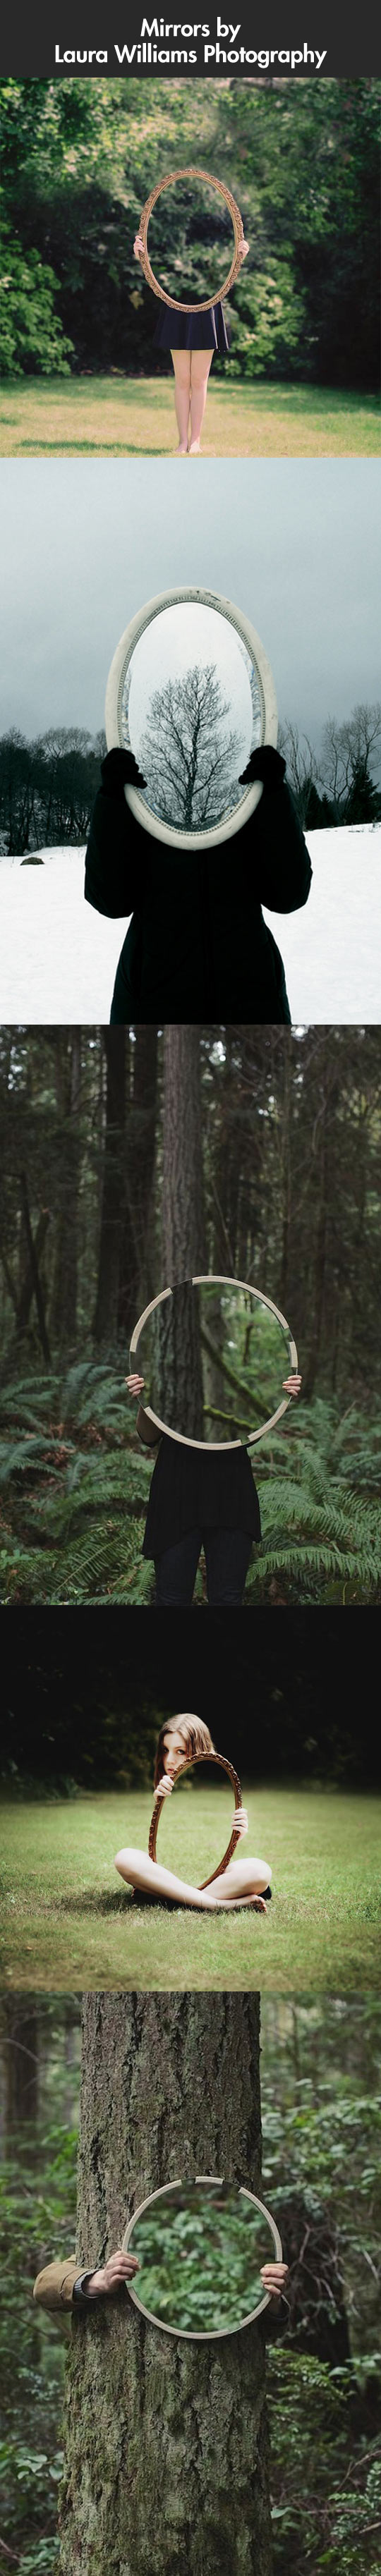 funny-mirrors-photography-Laura-Williams